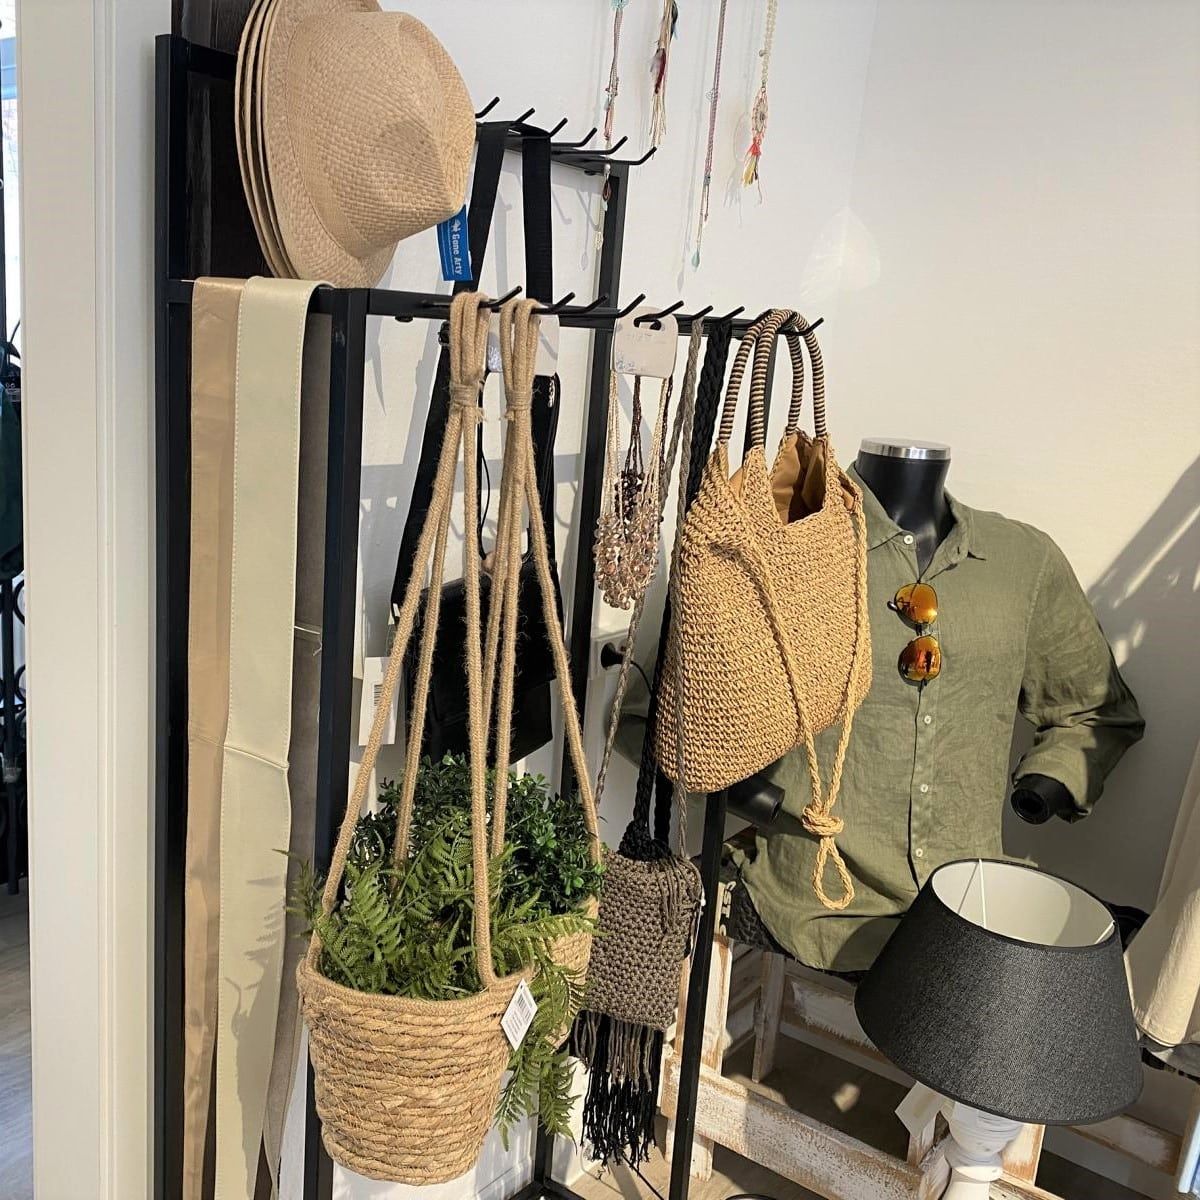 style hannover roots hannover 19 - Roots – Fashion, Wohnen, Accessoires